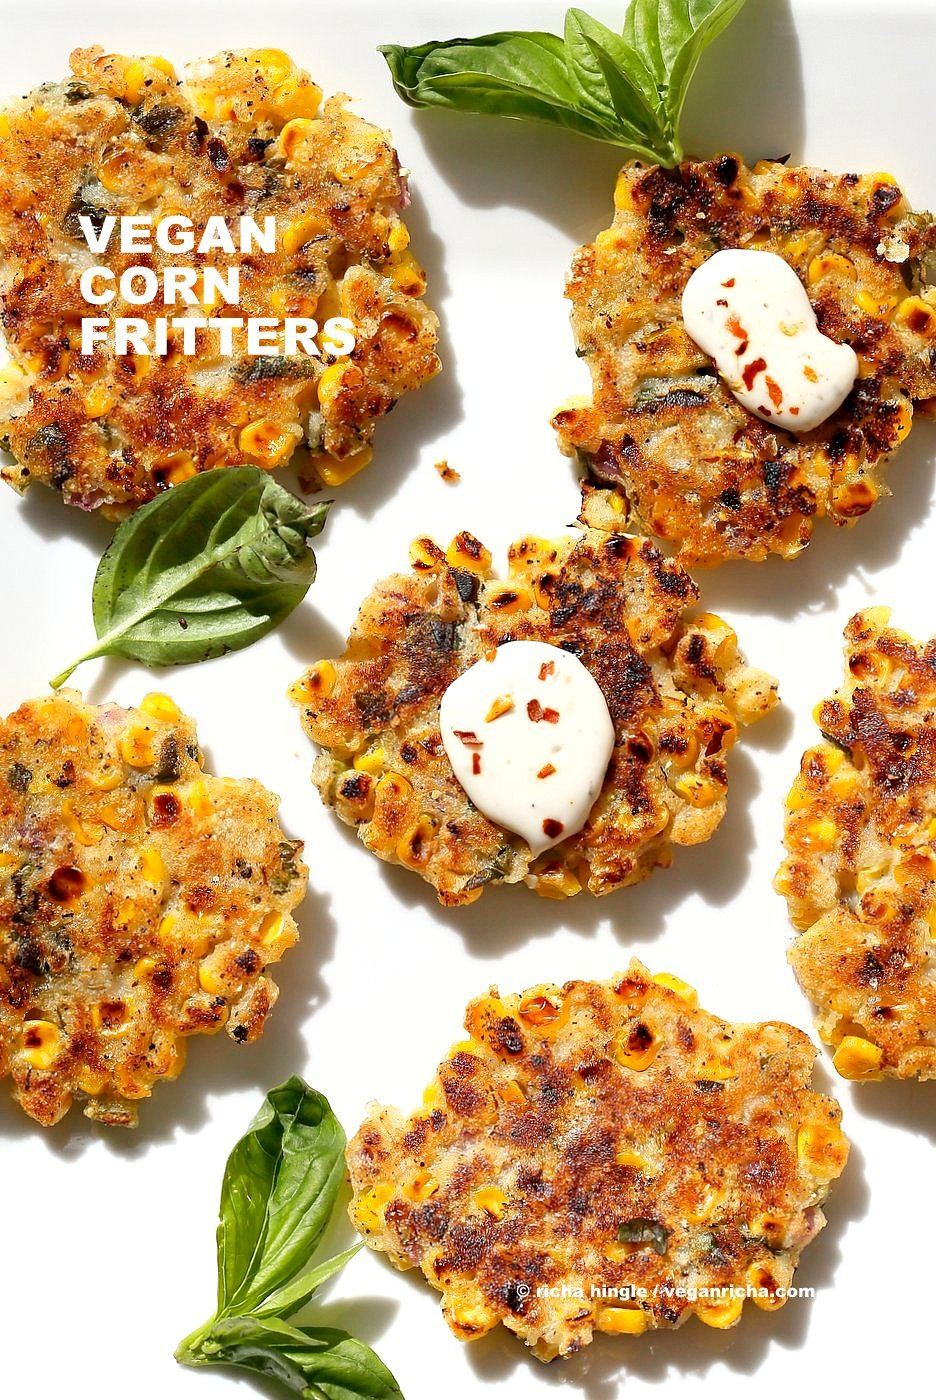 Basil Jalapeno Corn Fritters. Easy Gluten-free Vegan Corn Fritters with jalapeno, basil and black pepper. Serve with ketchup, vegan ranch or chutneys of choice. Soy-free Recipe. | VeganRicha.com